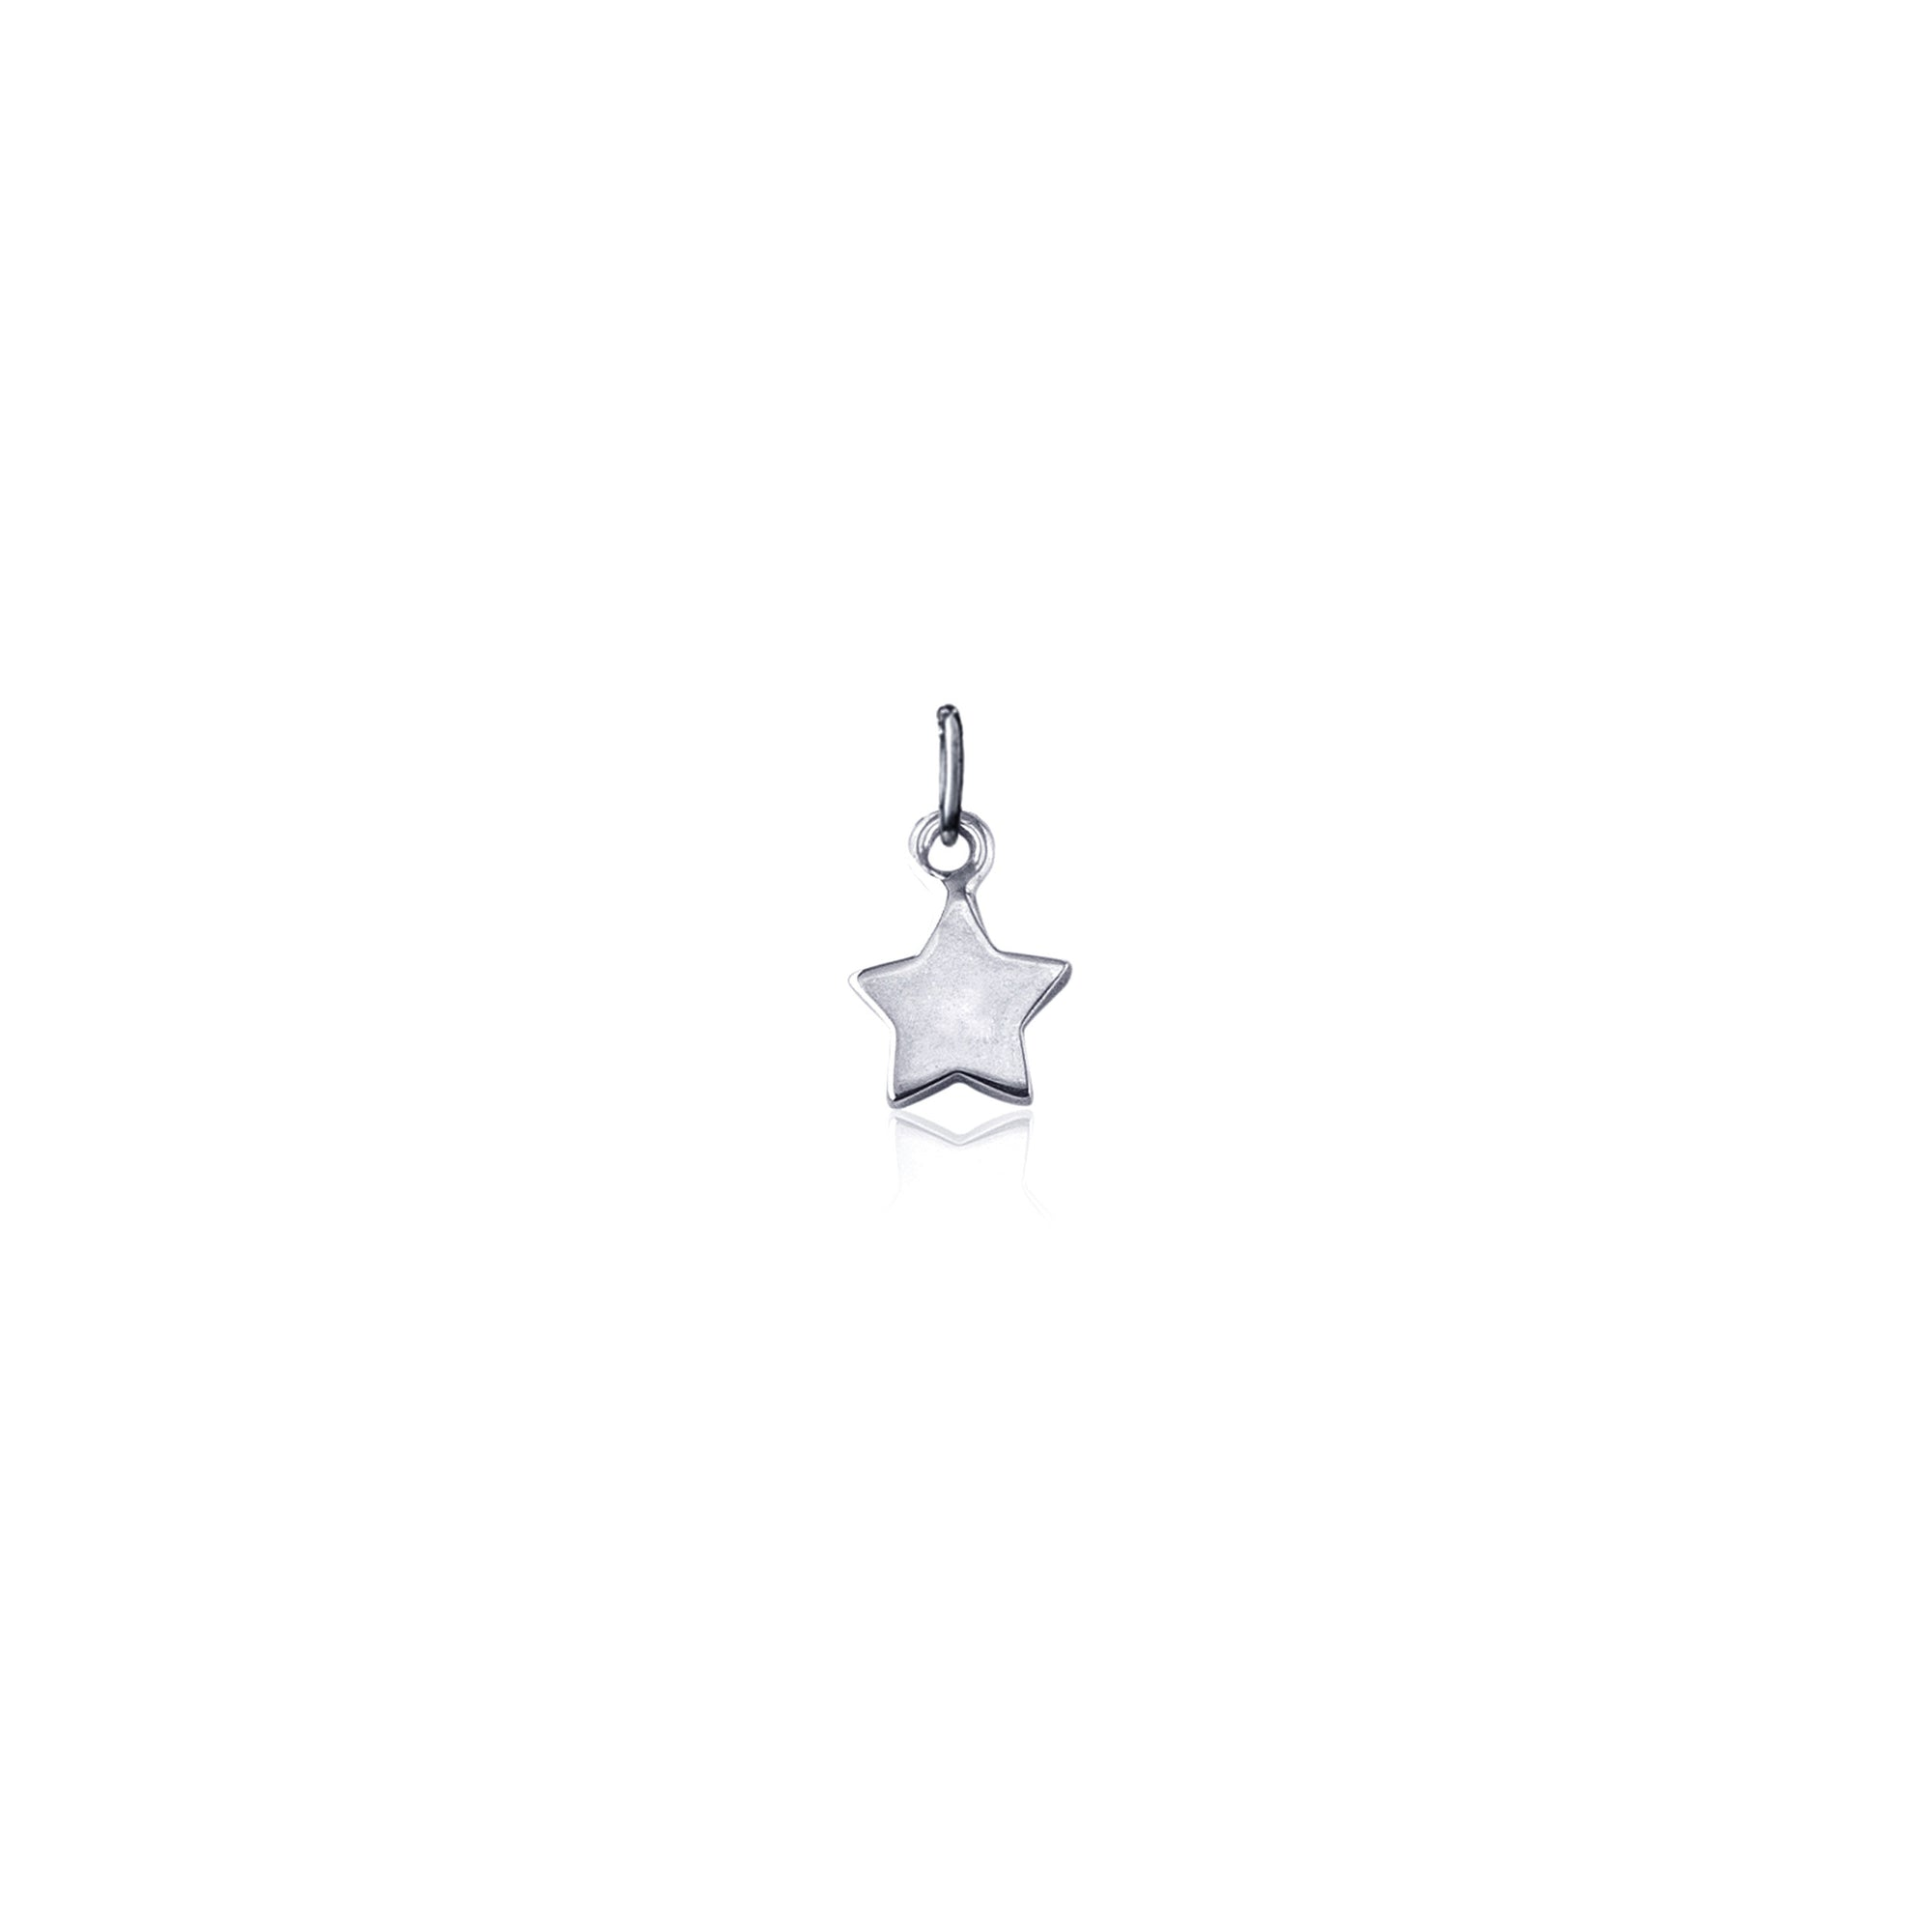 La Luna Rose Silver Star Charm for Necklace and Bracelets